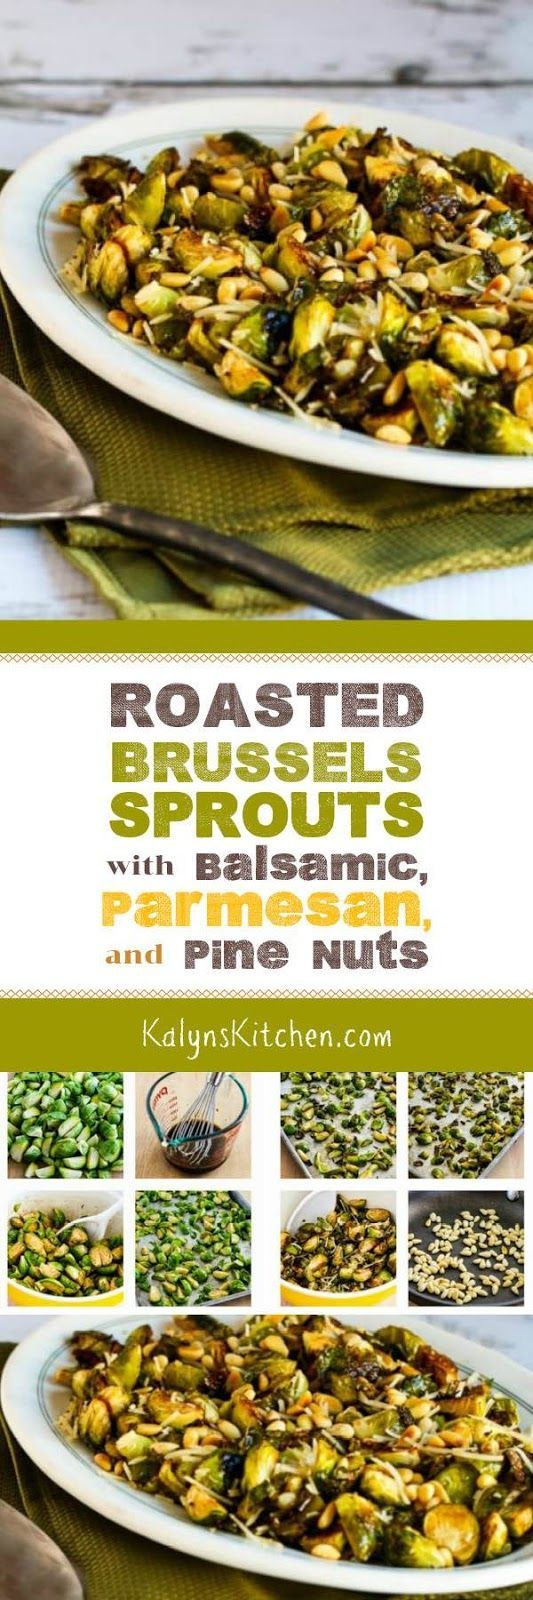 Roasted Brussels Sprouts with Balsamic, Parmesan, and Pine Nuts